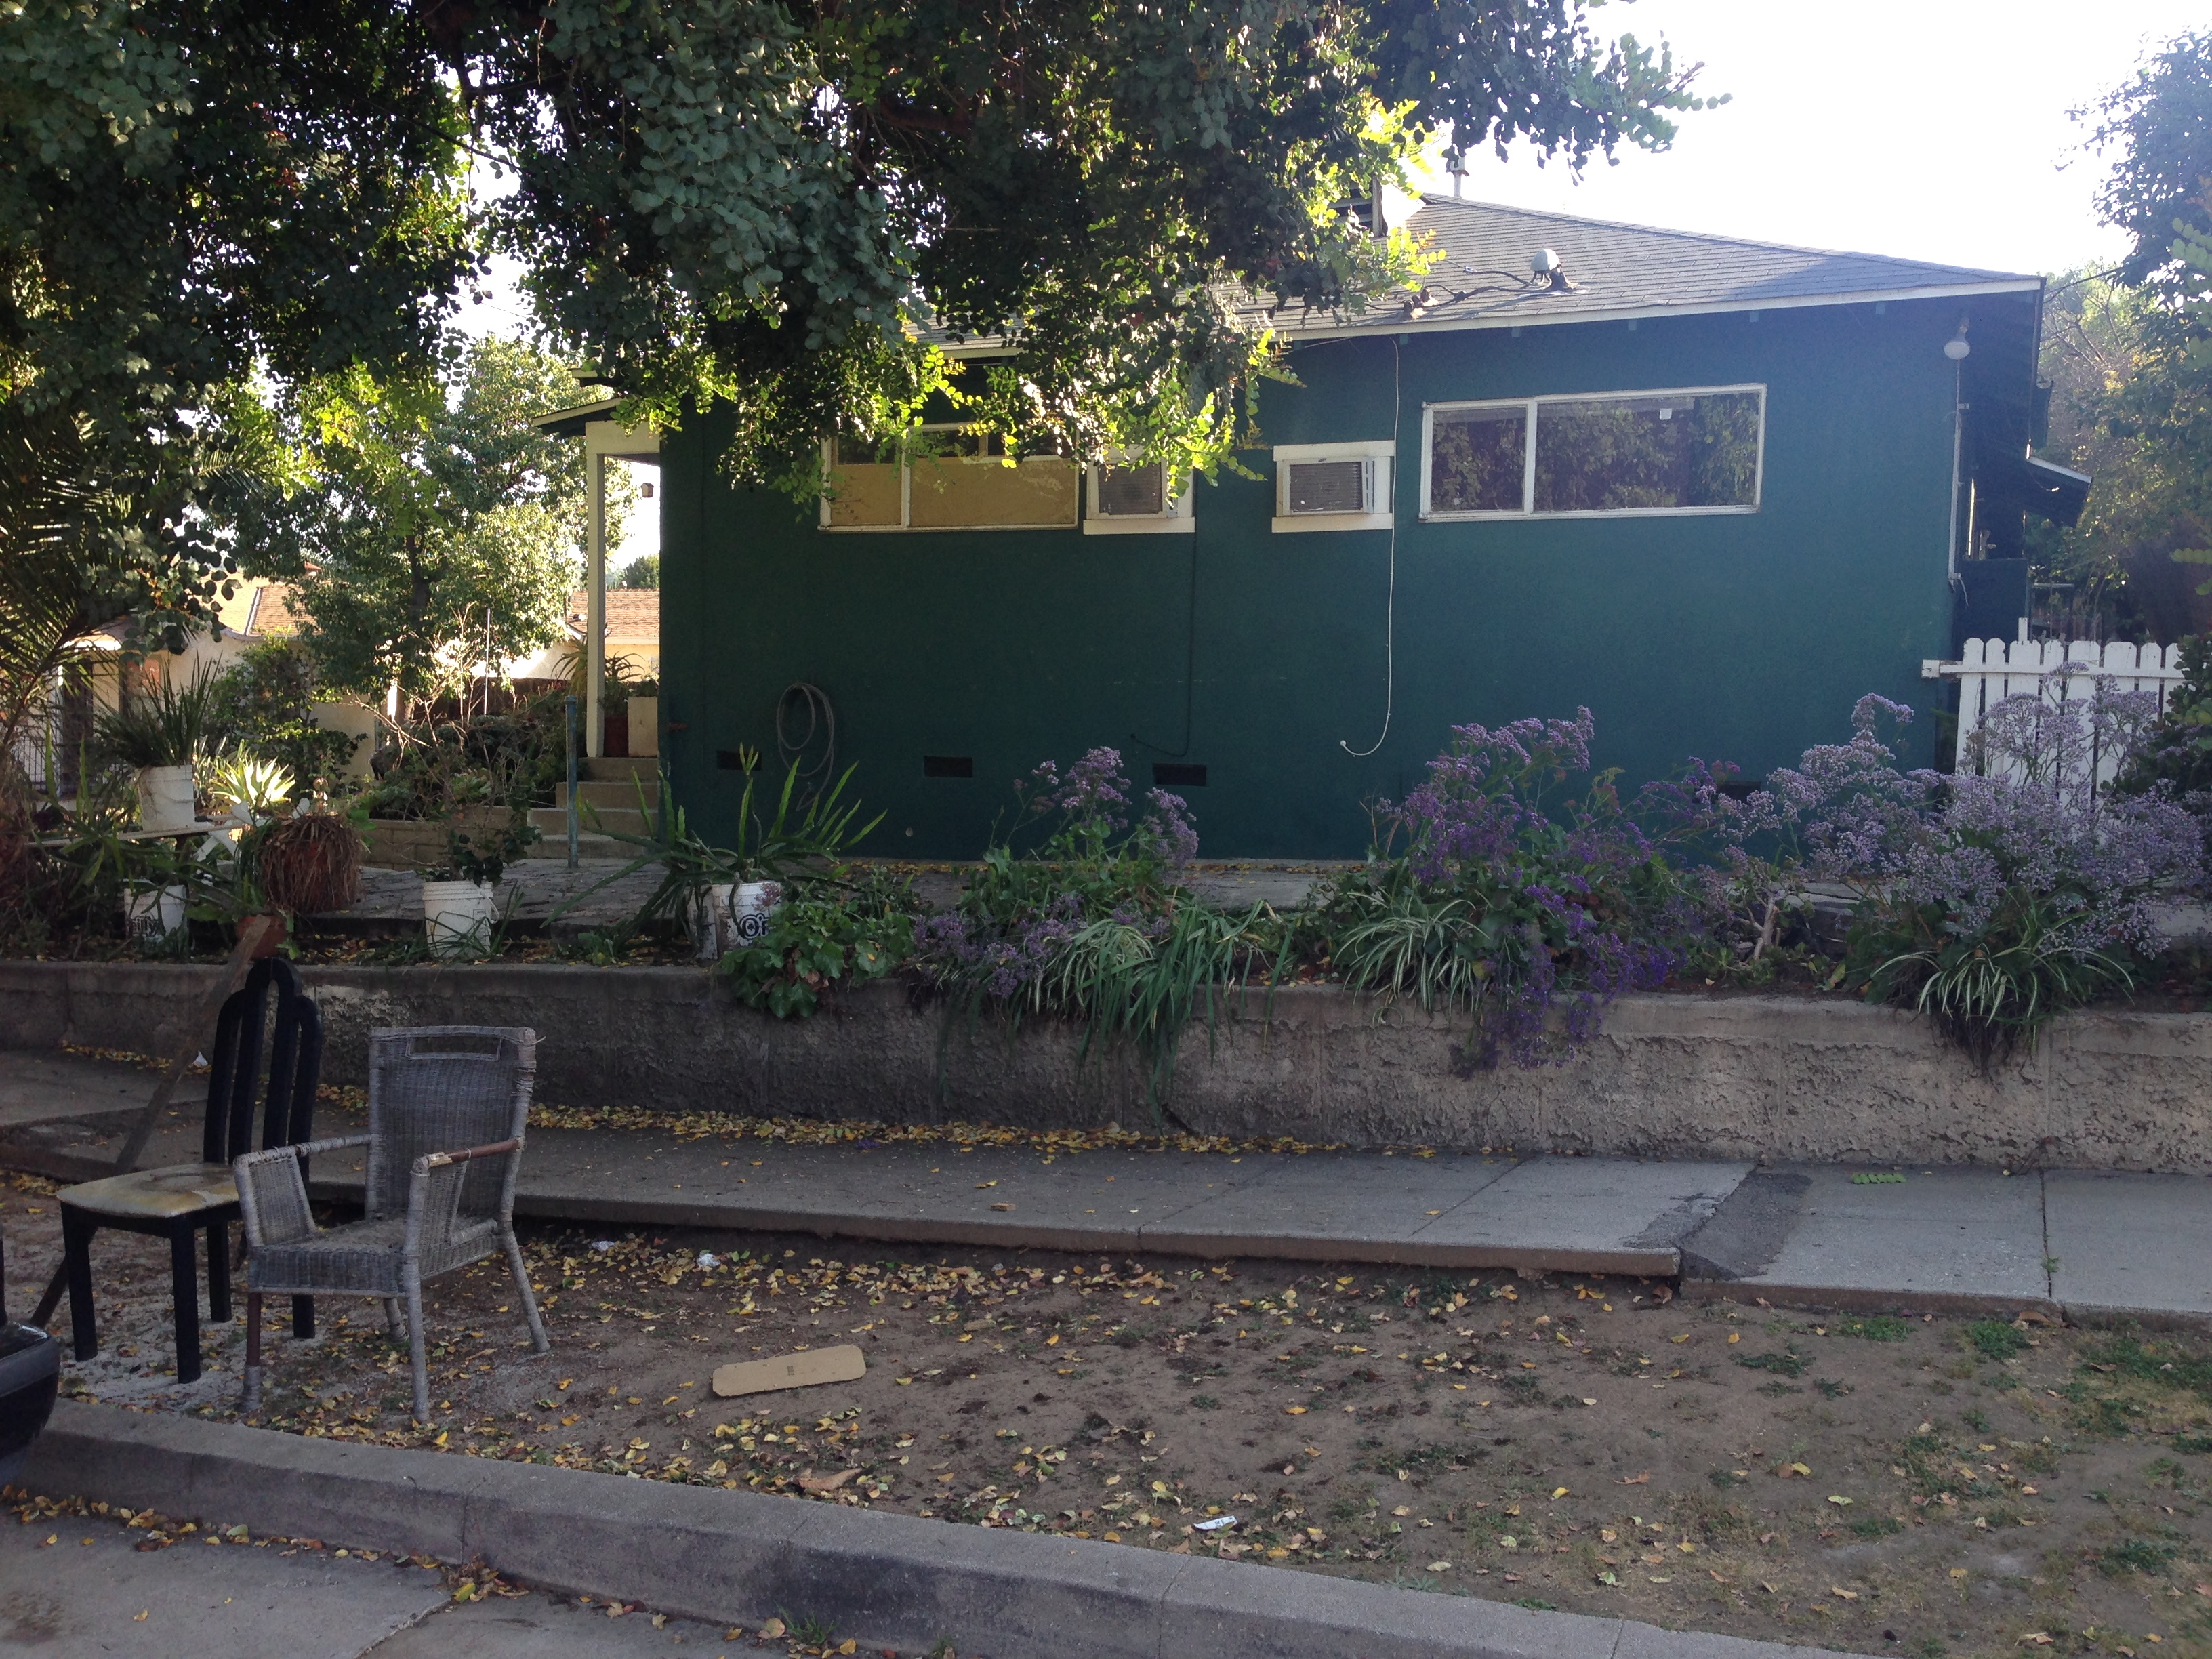 Great Triplex in a Really Good Part of Eagle Rock – $900,000